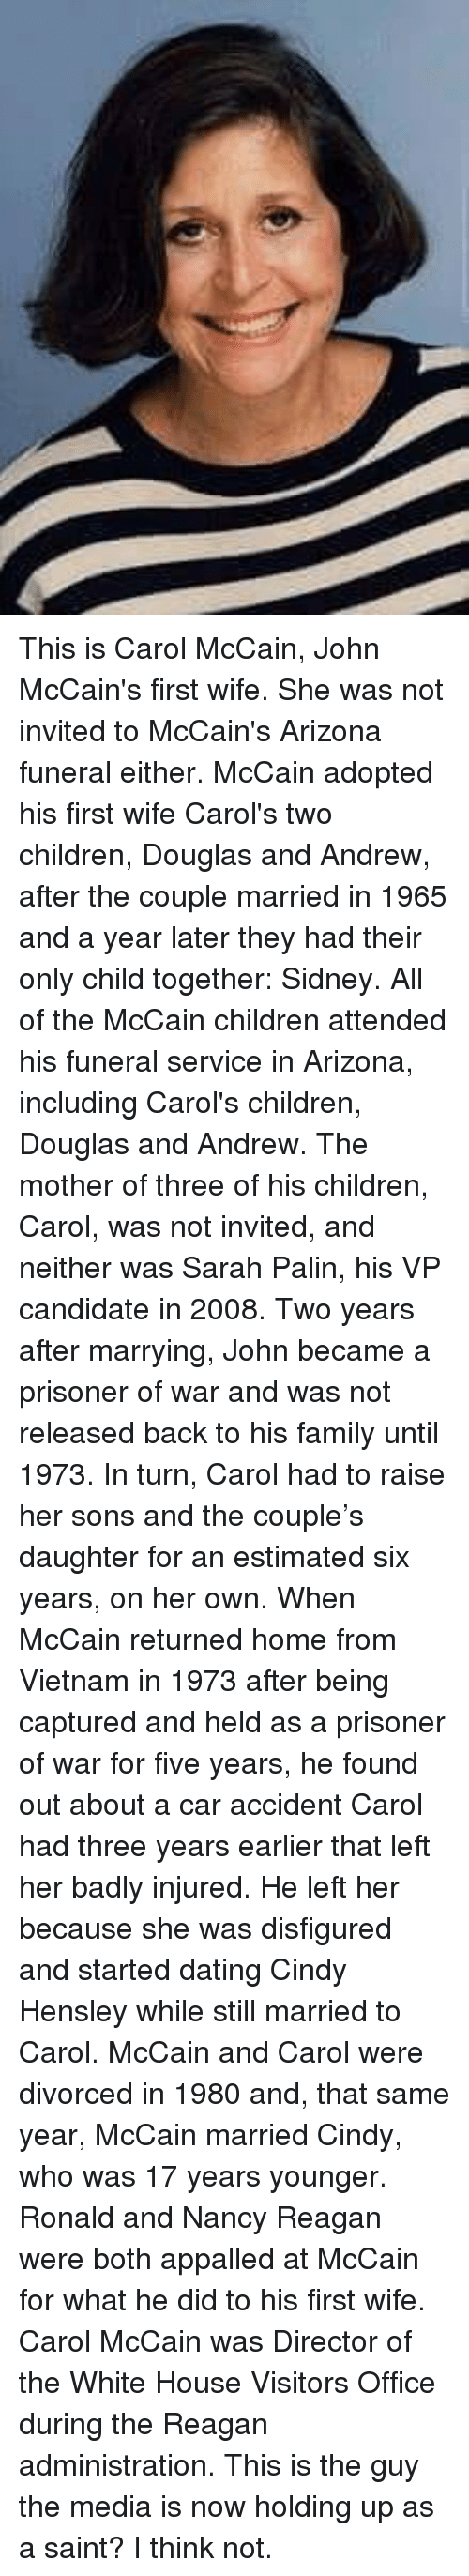 appalled: This is Carol McCain, John McCain's first wife. She was not invited to McCain's Arizona funeral either. McCain adopted his first wife Carol's two children, Douglas and Andrew, after the couple married in 1965 and a year later they had their only child together: Sidney. All of the McCain children attended his funeral service in Arizona, including Carol's children, Douglas and Andrew. The mother of three of his children, Carol, was not invited, and neither was Sarah Palin, his VP candidate in 2008.  Two years after marrying, John became a prisoner of war and was not released back to his family until 1973. In turn, Carol had to raise her sons and the couple's daughter for an estimated six years, on her own. When McCain returned home from Vietnam in 1973 after being captured and held as a prisoner of war for five years, he found out about a car accident Carol had three years earlier that left her badly injured.  He left her because she was disfigured and started dating Cindy Hensley while still married to Carol. McCain and Carol were divorced in 1980 and, that same year, McCain married Cindy, who was 17 years younger. Ronald and Nancy Reagan were both appalled at McCain for what he did to his first wife. Carol McCain was Director of the White House Visitors Office during the Reagan administration.  This is the guy the media is now holding up as a saint? I think not.